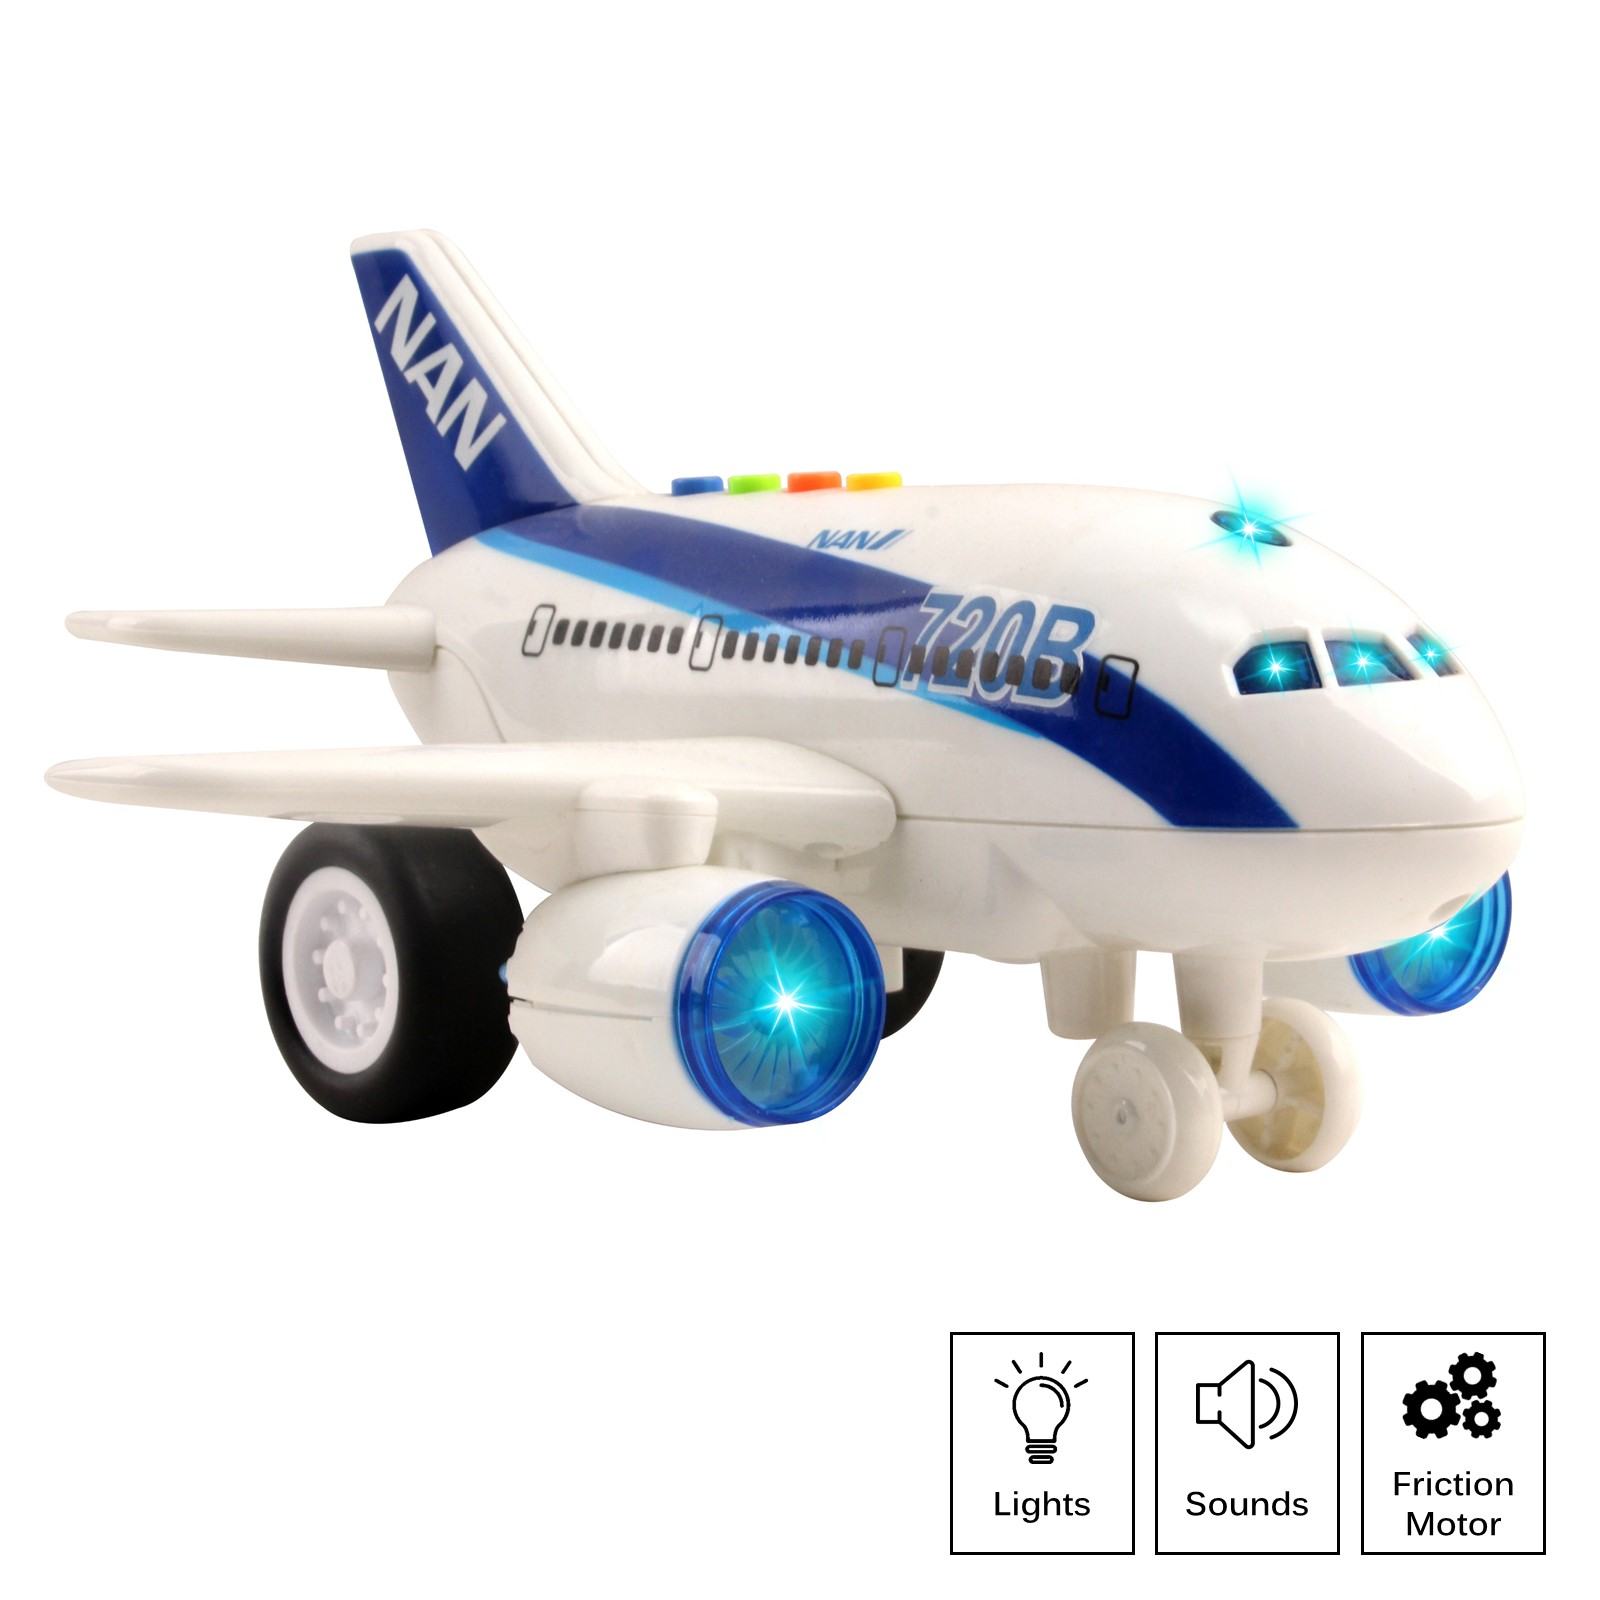 Commercial Airplane Friction Powered Aviation Toy Push And Go 1:160 Scale Aircraft With Fun Lights And Sounds Durably Built Kids Pretend Play Air Plane Perfect Gift For Children Boys Girls